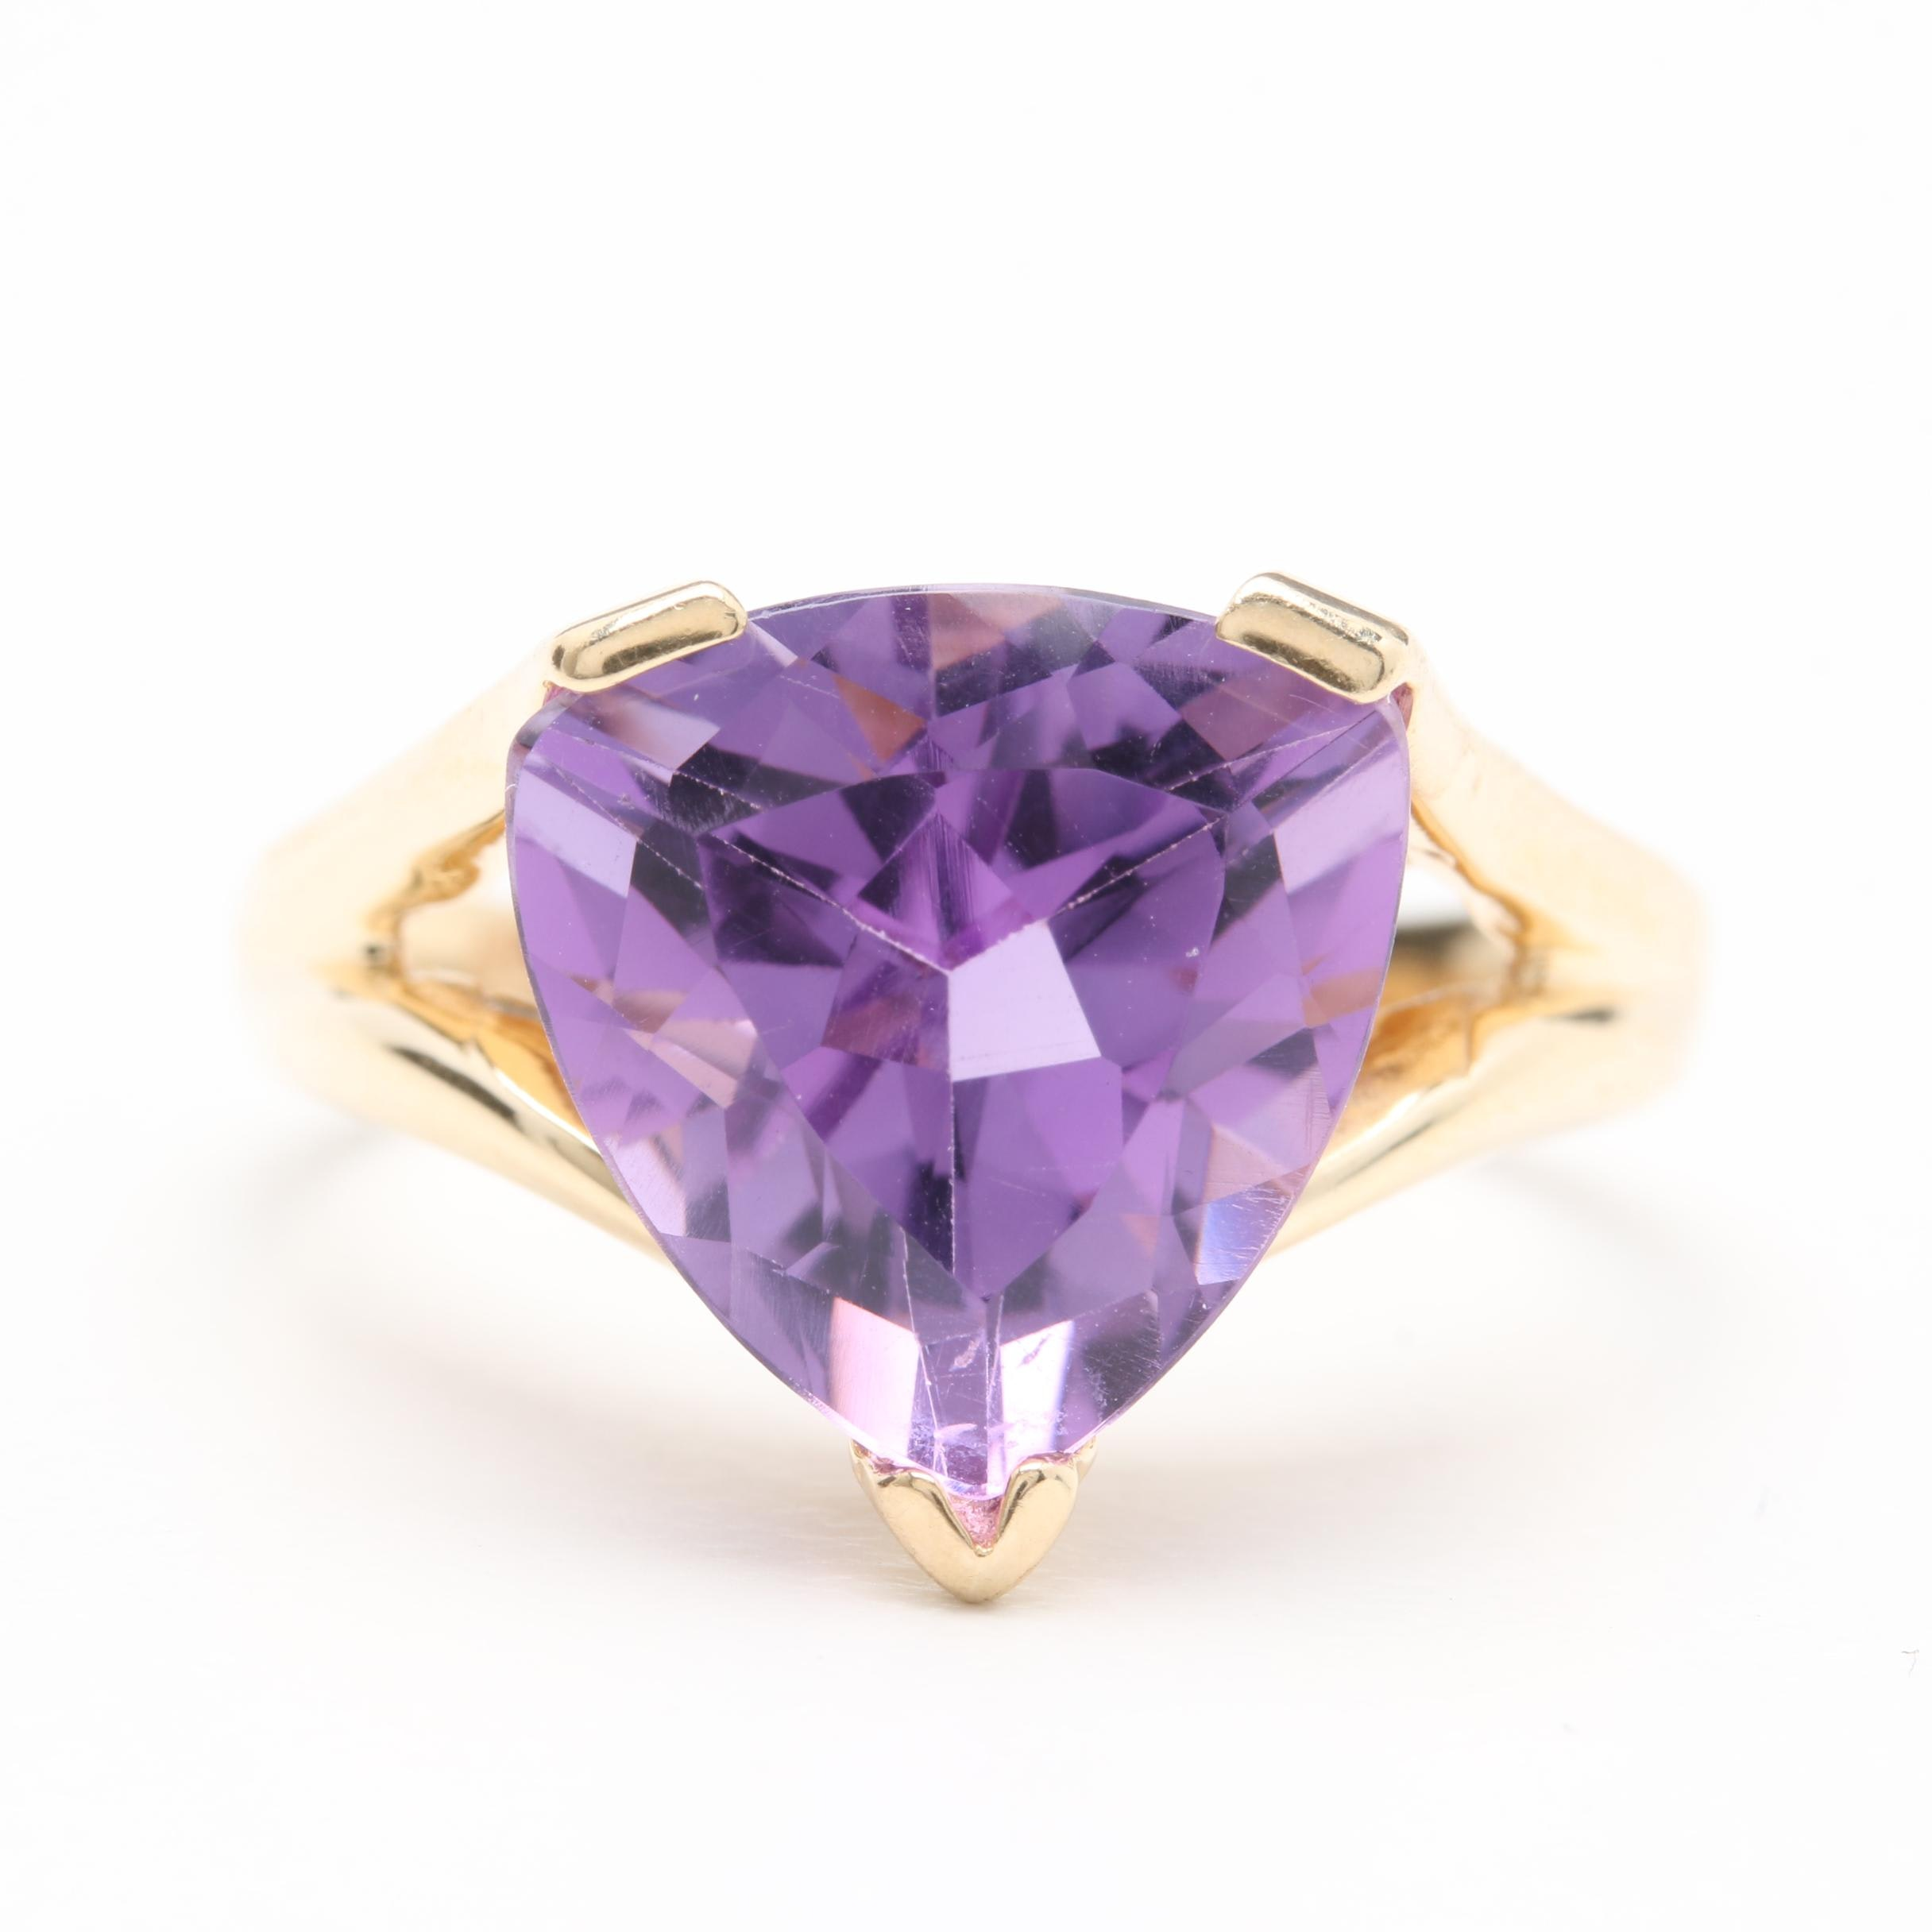 10K Yellow Gold Amethyst Solitaire Ring